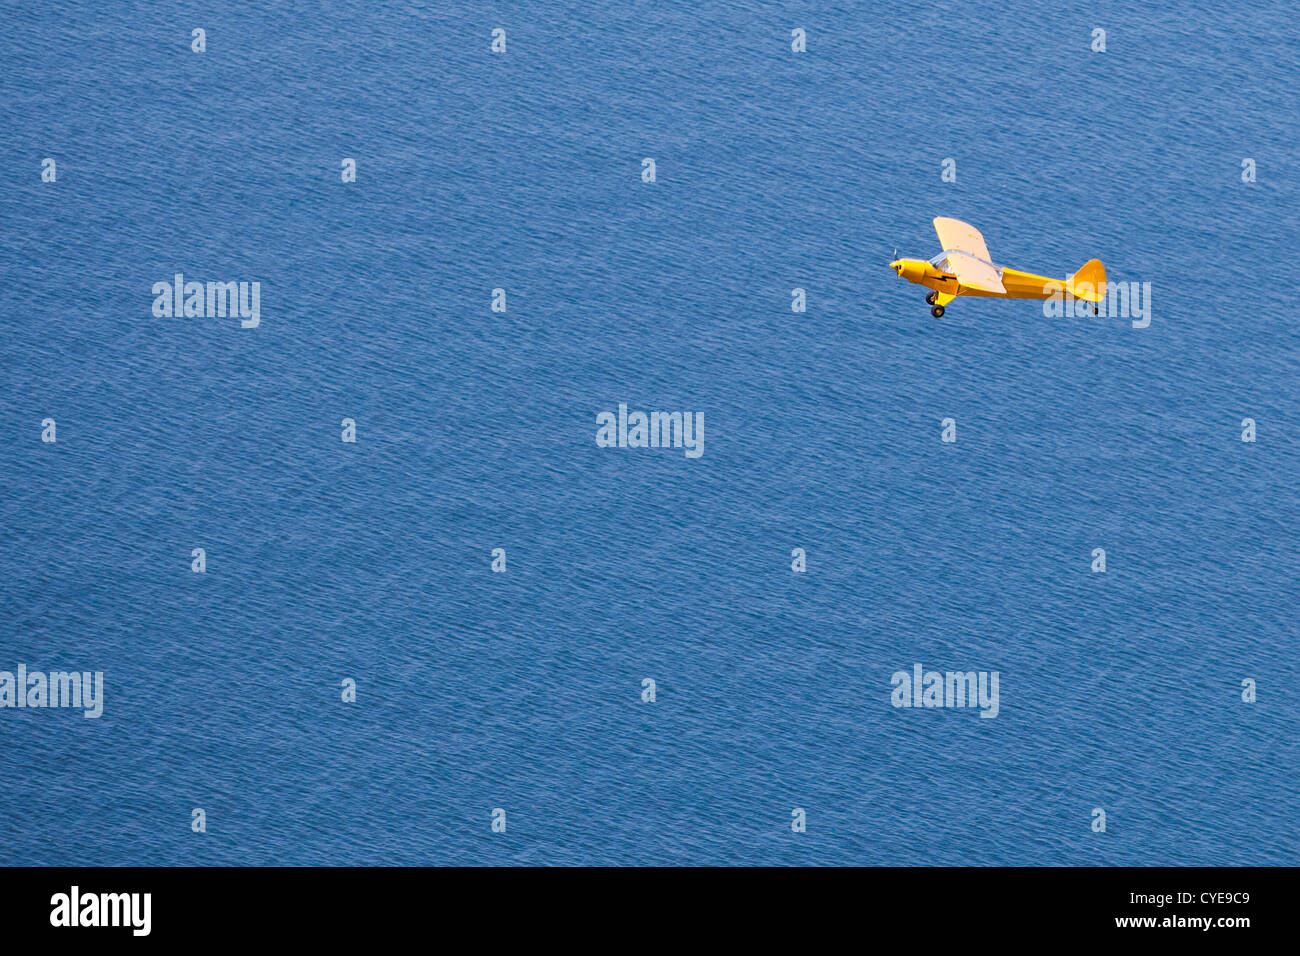 The Netherlands, Scheveningen, The Hague or in Dutch: Den Haag. Small airplane, a Piper Cub, flying over the North - Stock Image